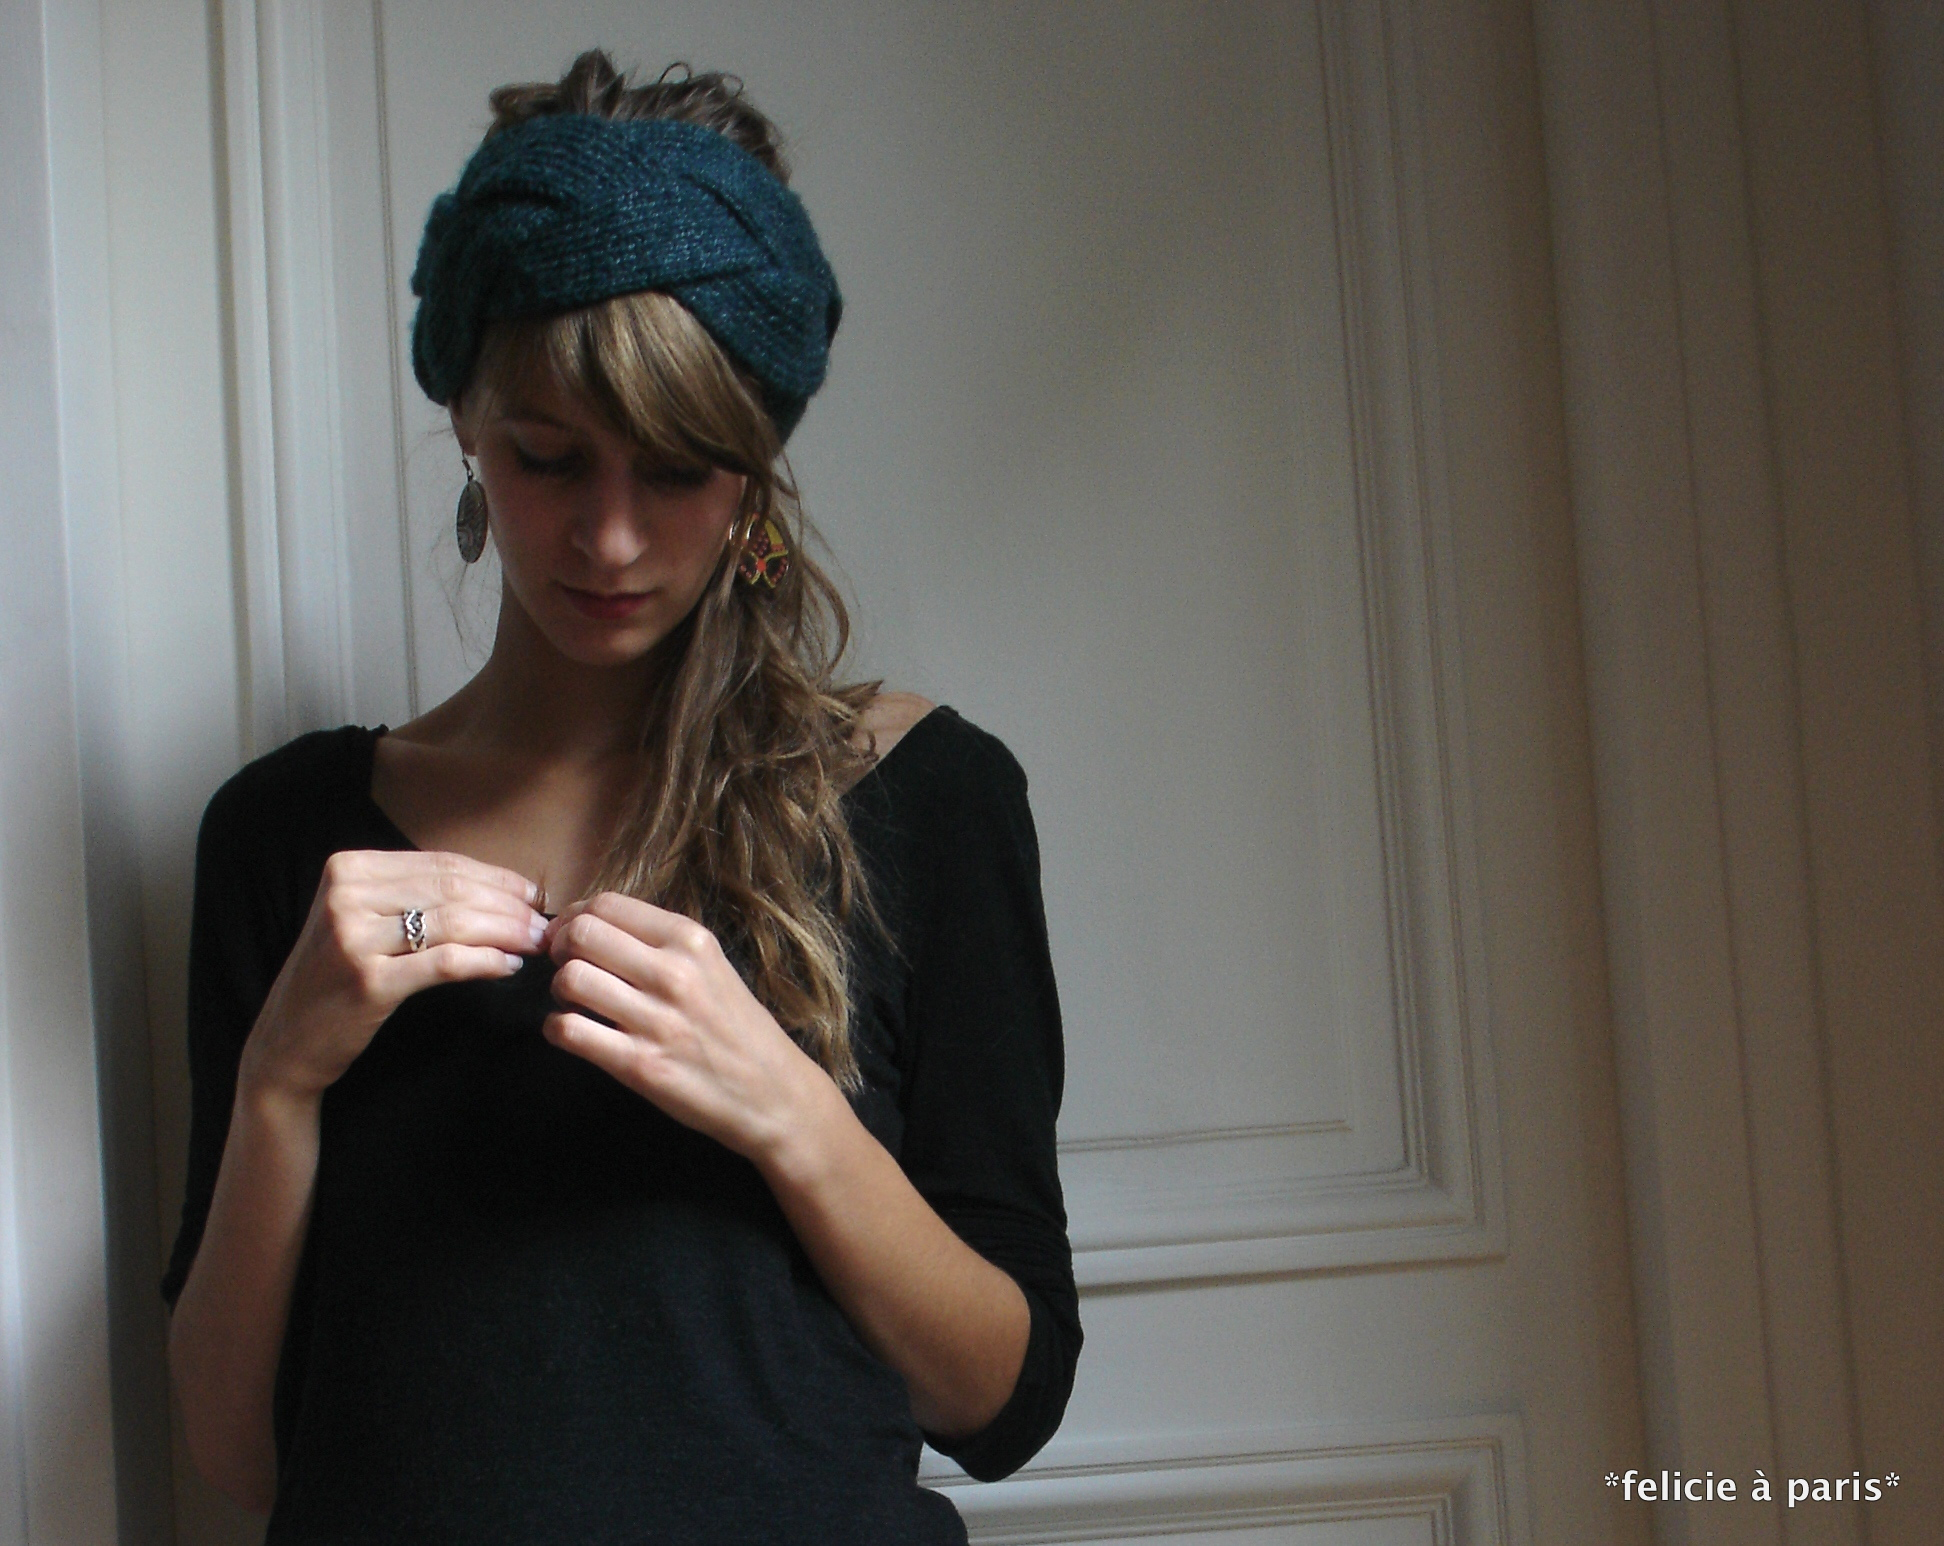 Portrait blog: Mathilde de Félicie à Paris